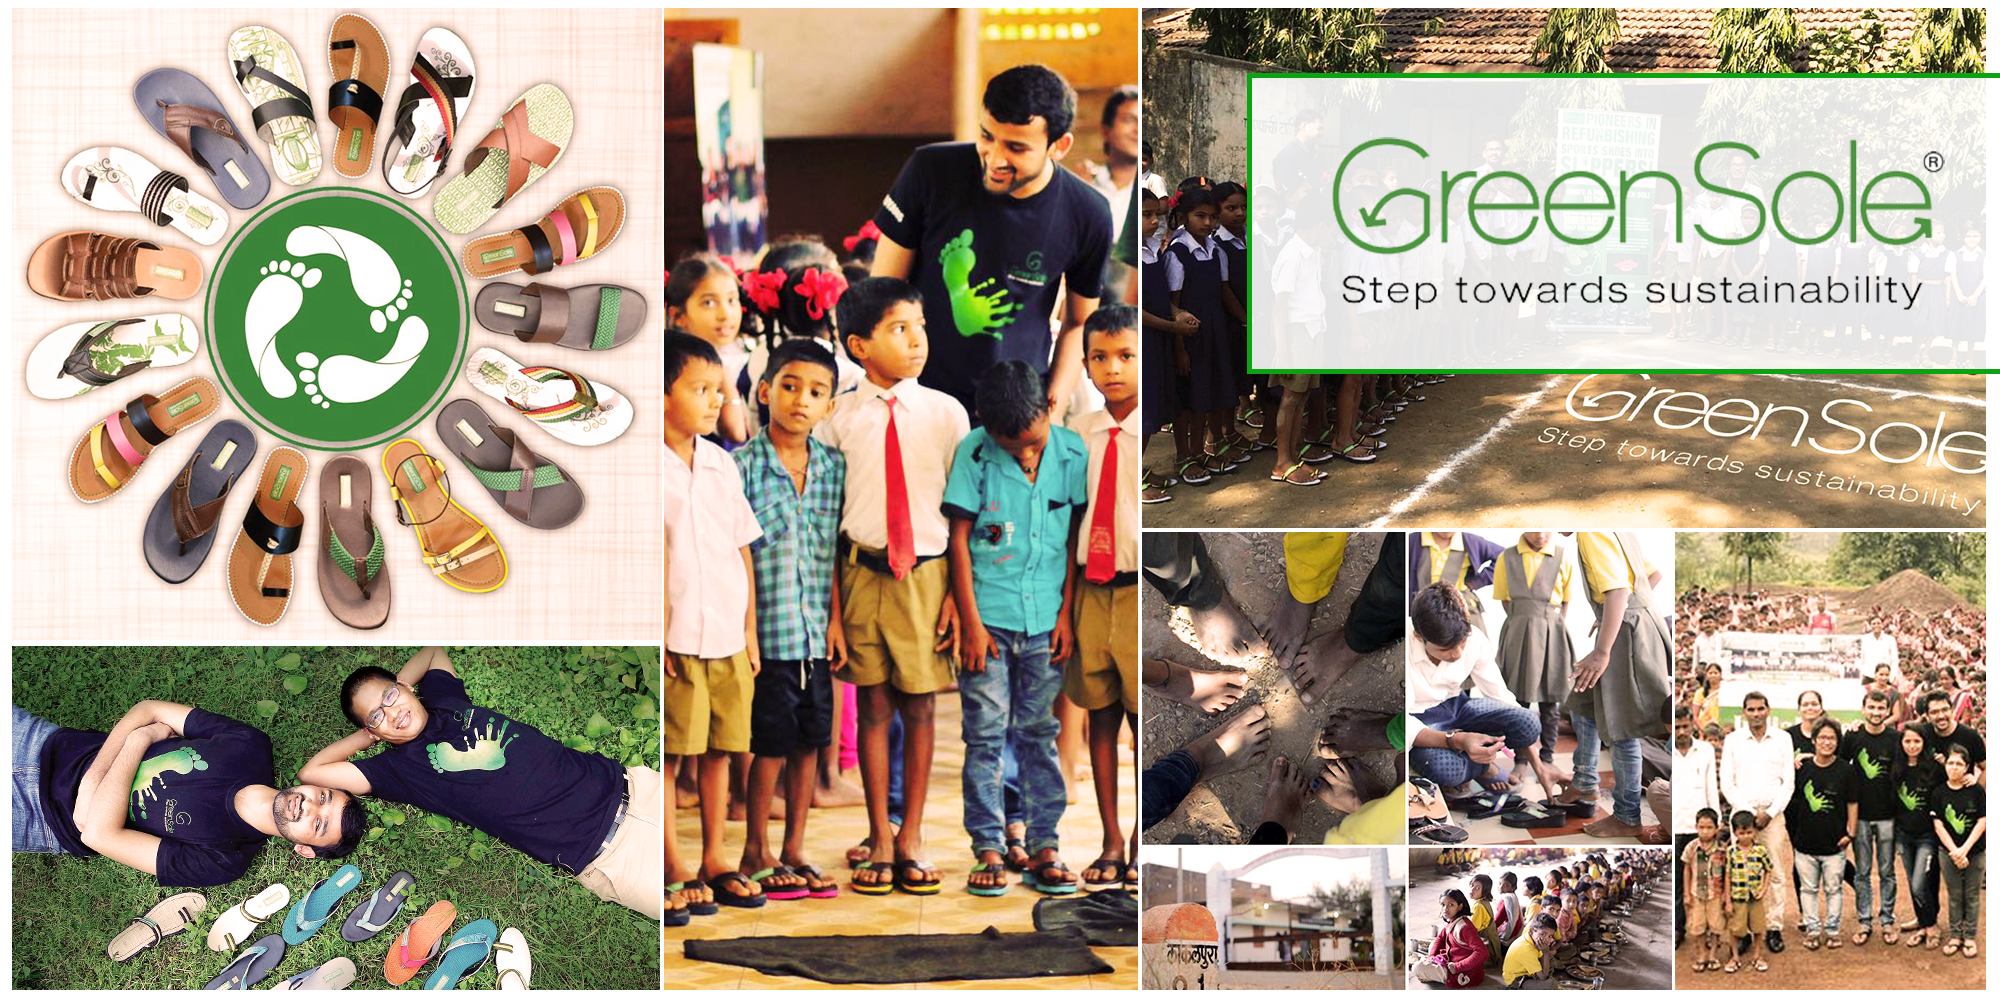 CSR responsibility by greensole